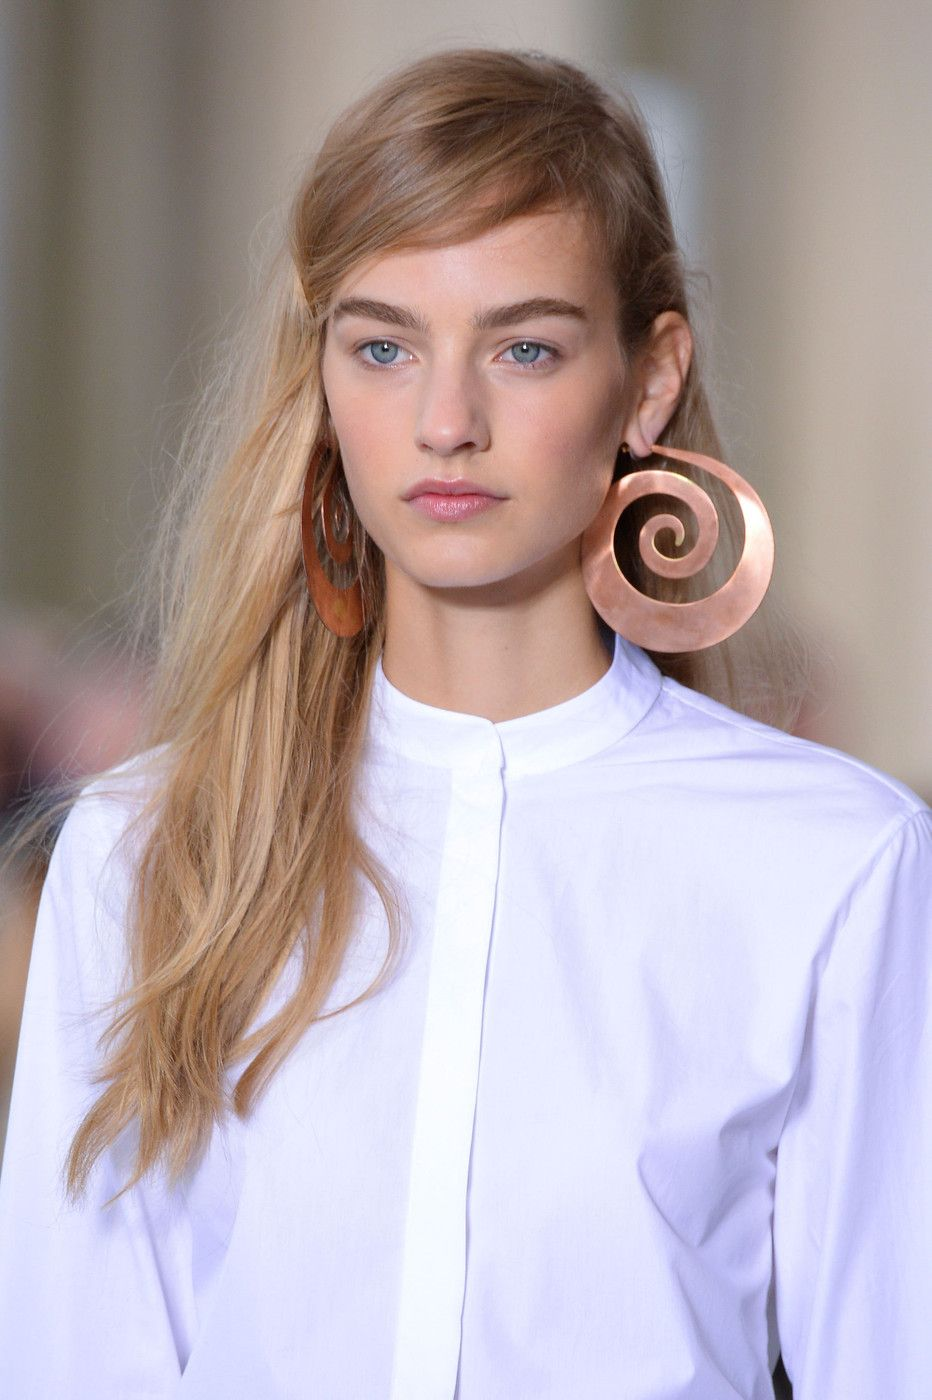 Rose Gold Swirls at Tory Burch - Best Jewelry from New York Fashion Week Spring 2015 - StyleBistro